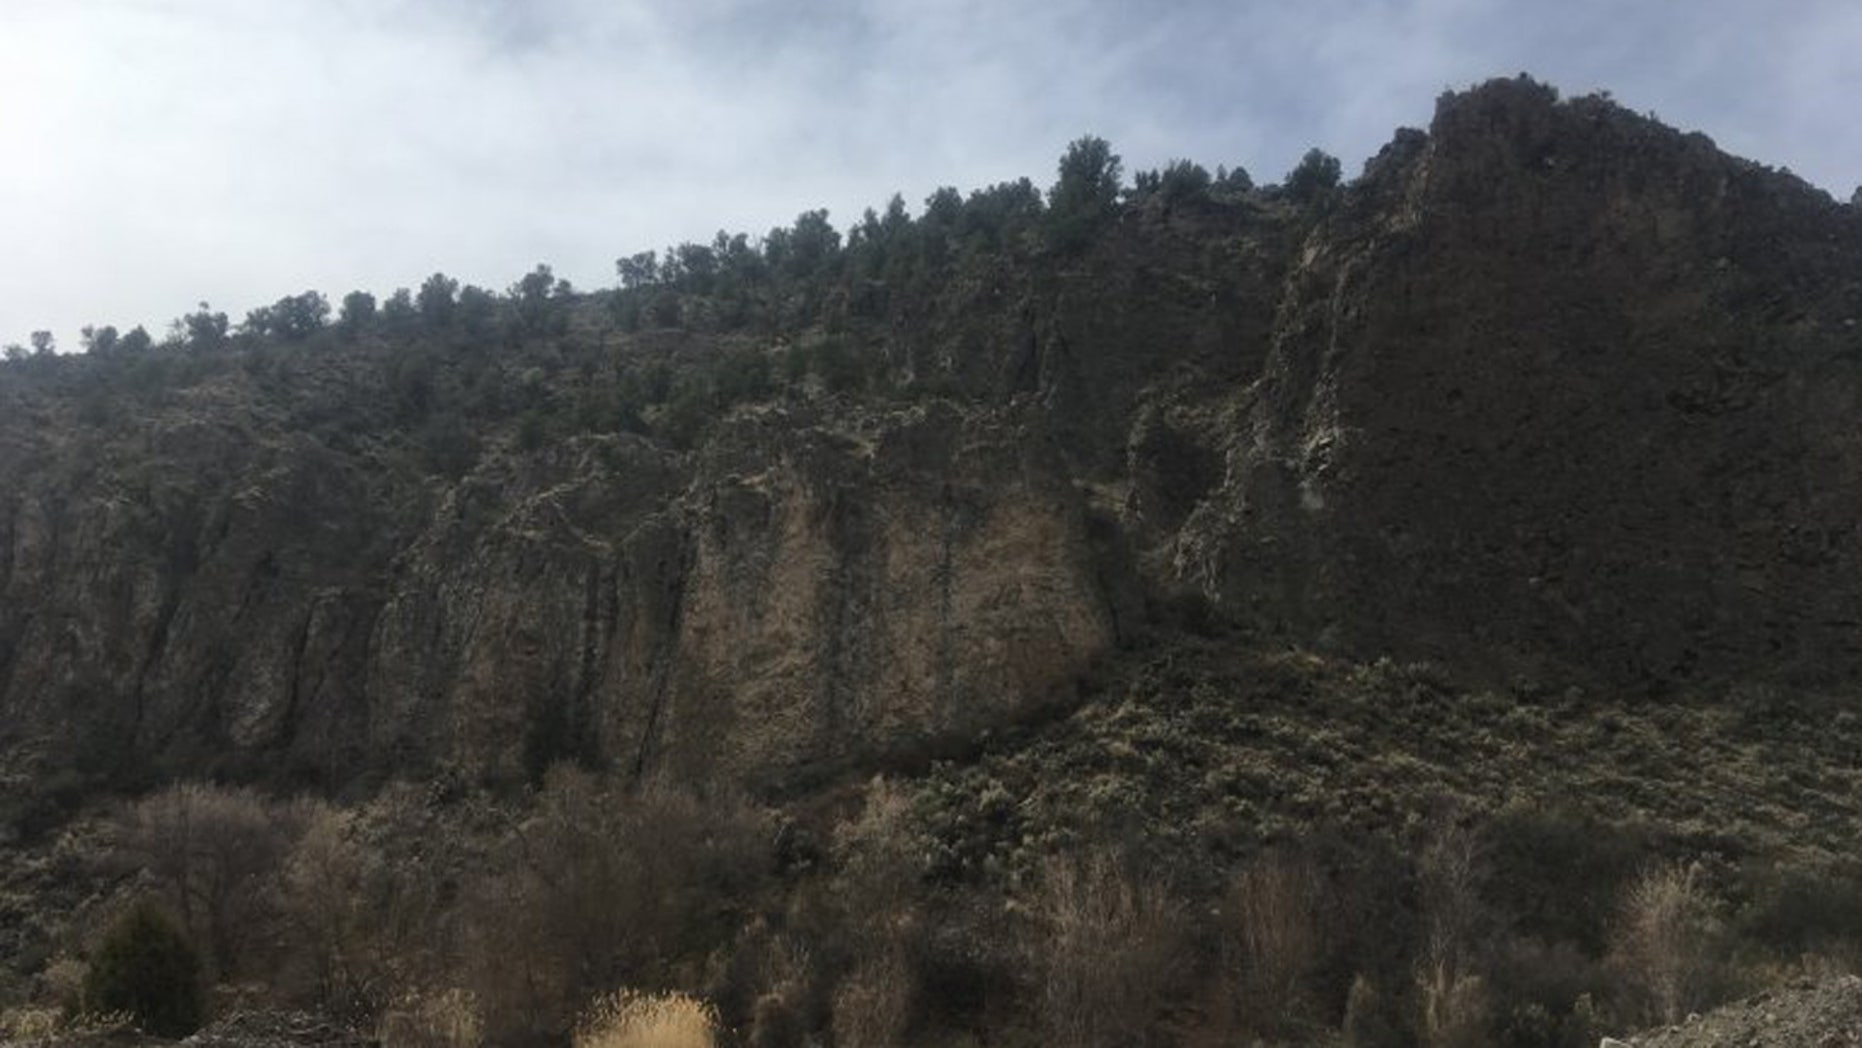 A man died after falling from a cliff in Garfield Canyon, Utah on Saturday.